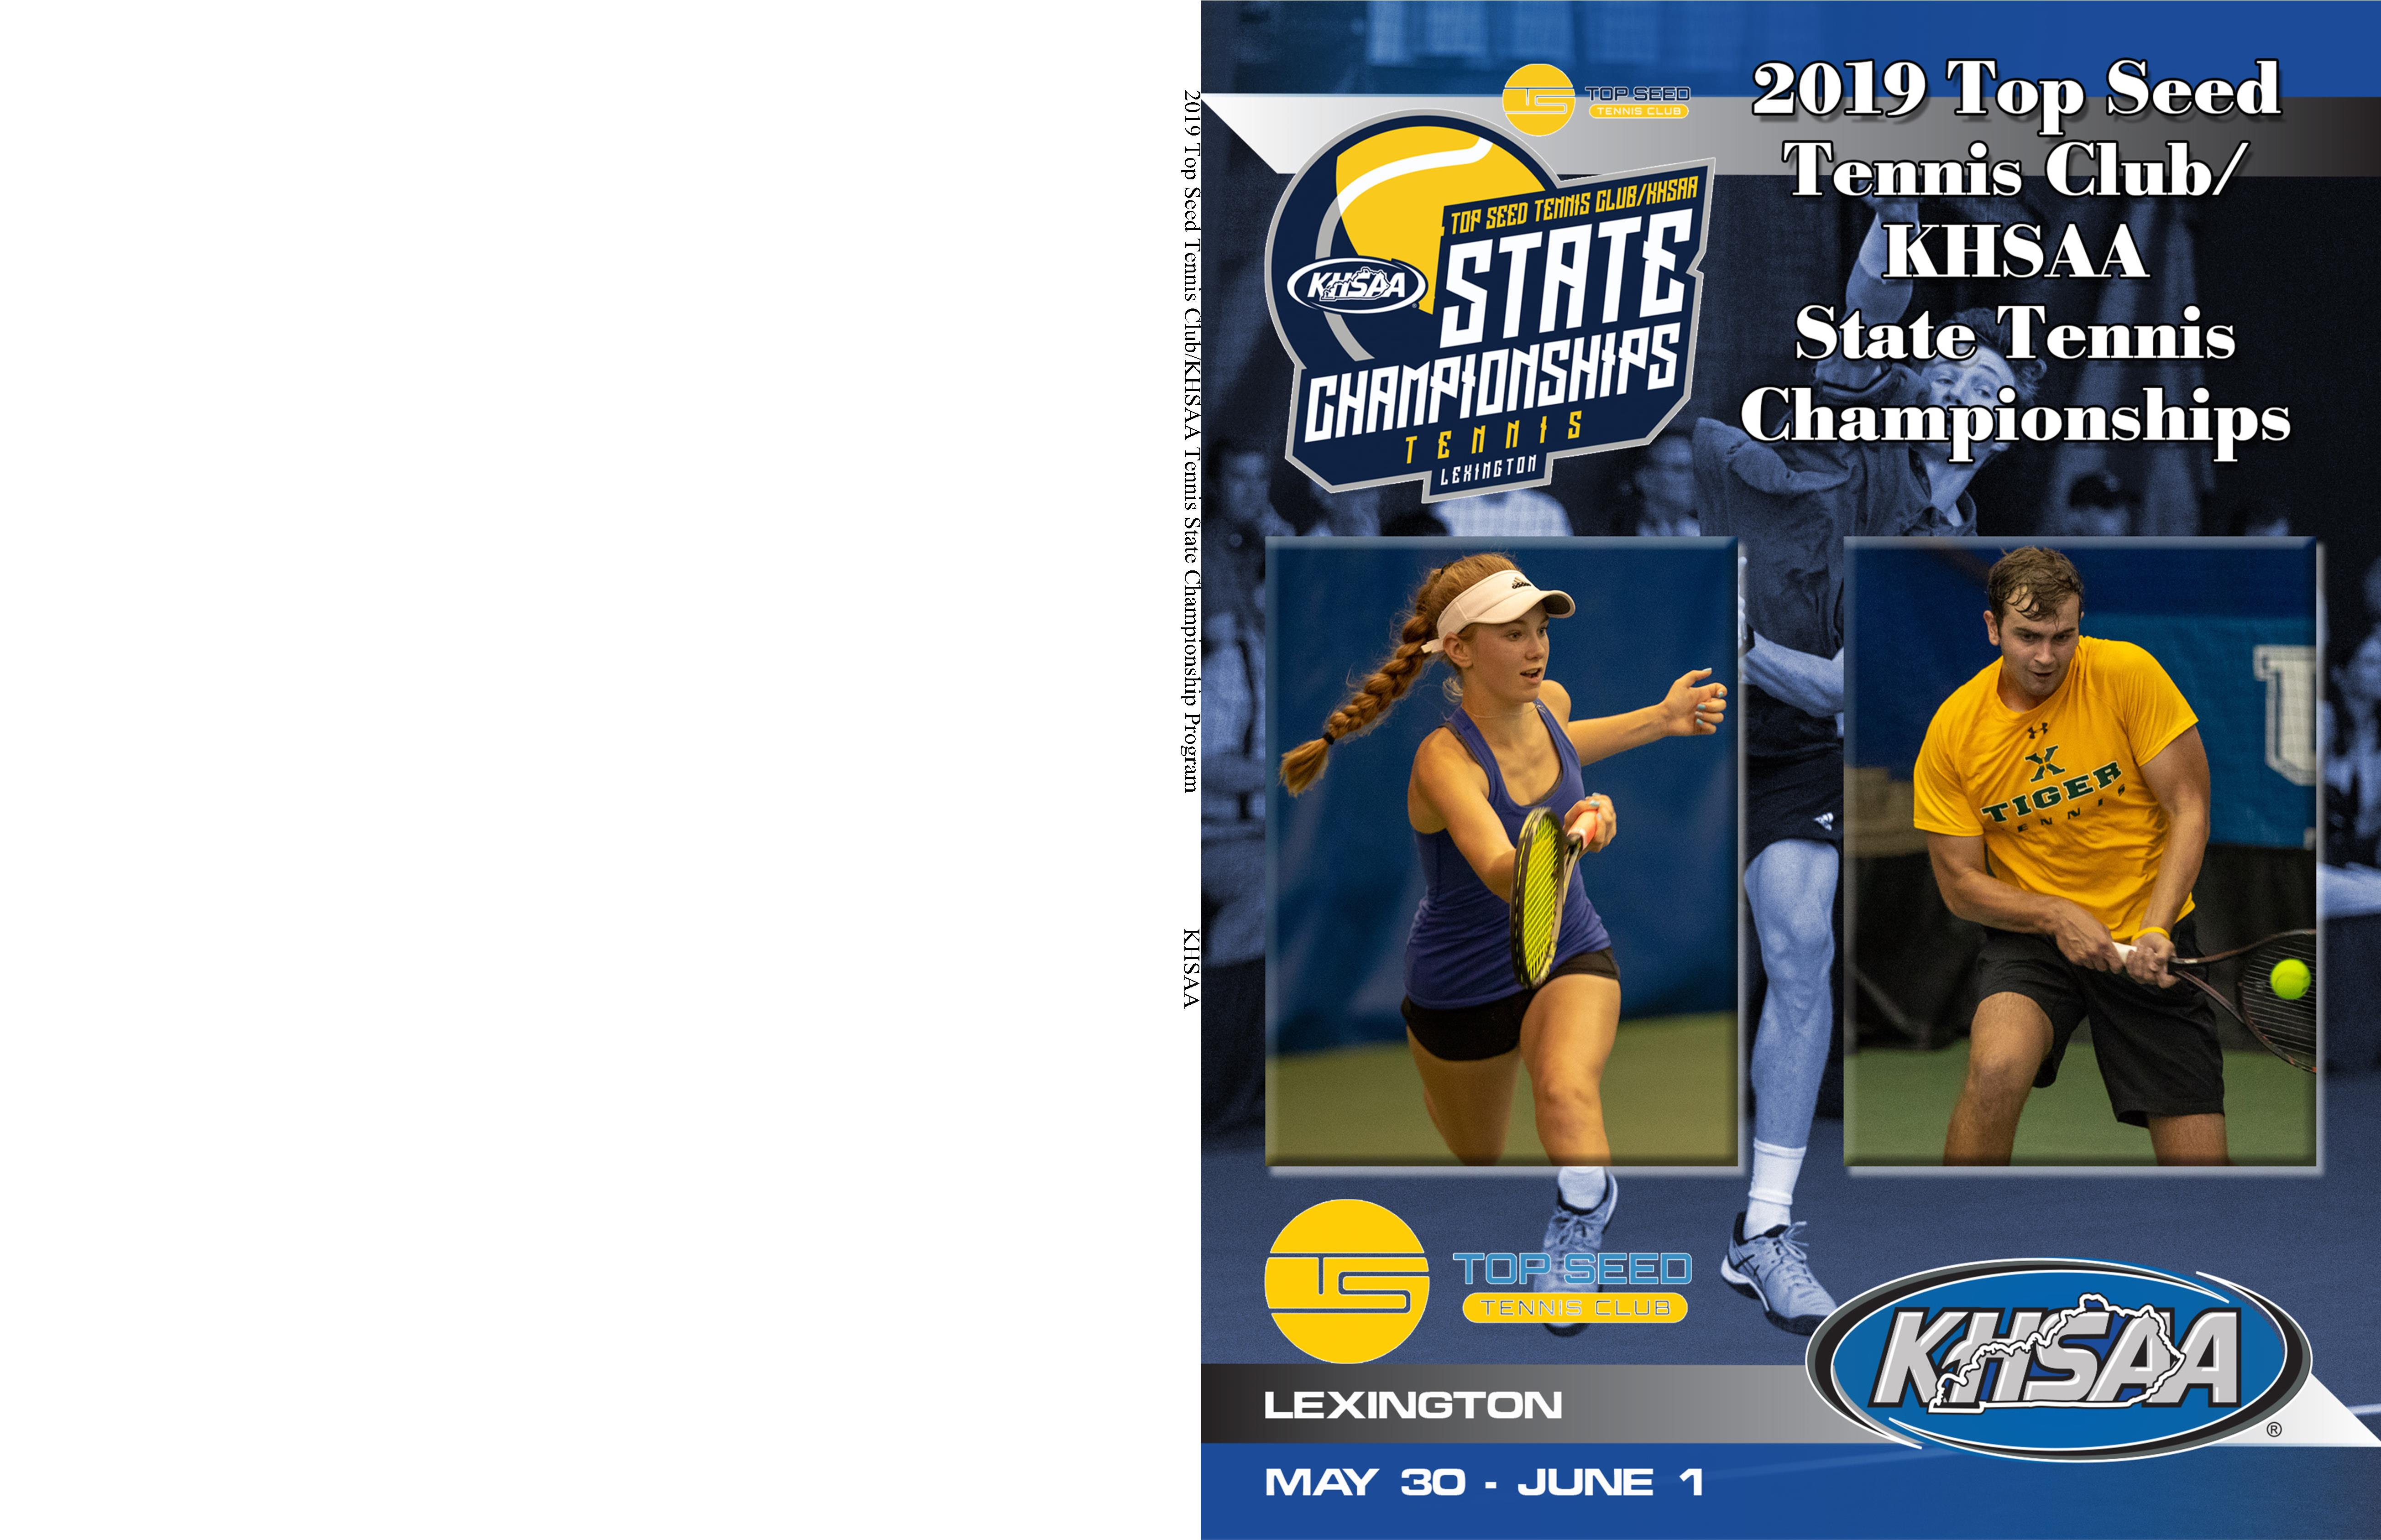 2019 Top Seed Tennis Club/KHSAA Tennis State Championship Program cover image